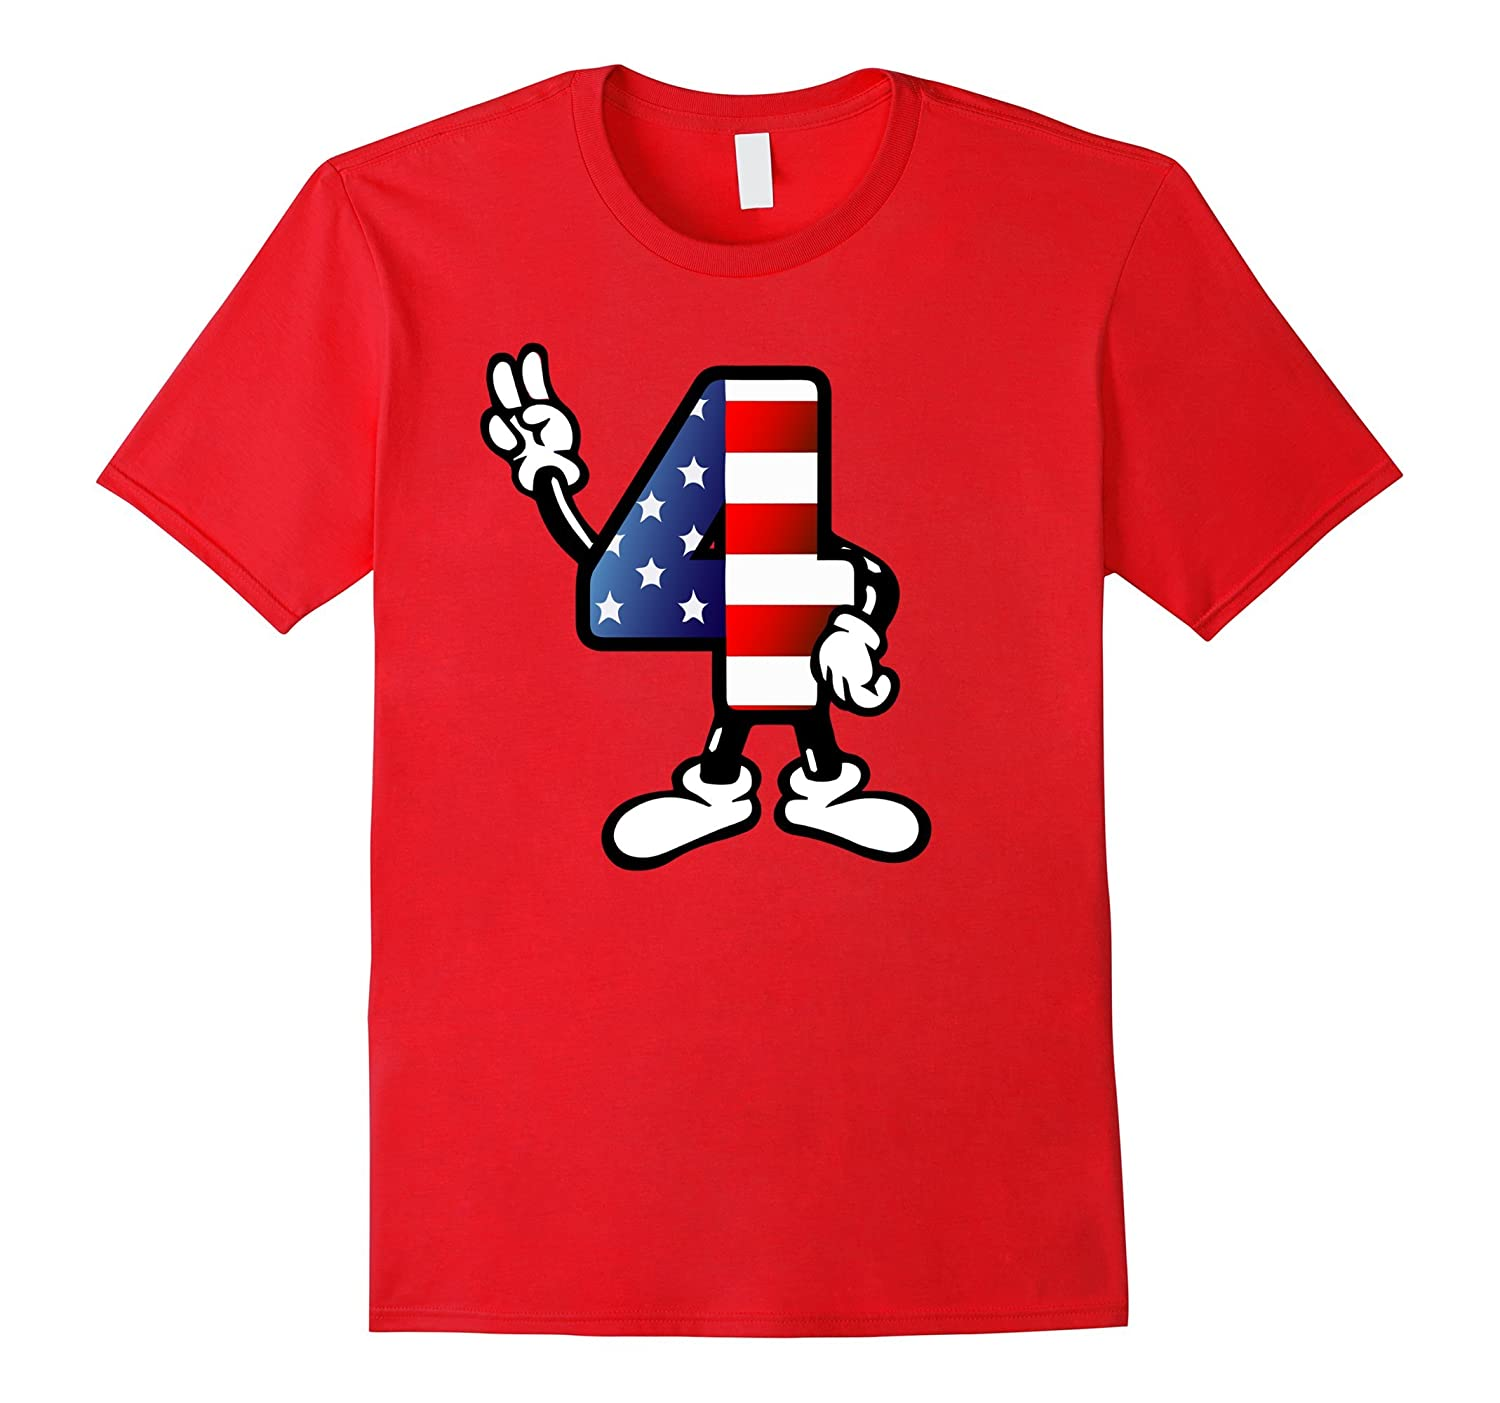 4th of July Shirt with American Flag and Peace Sign-PL